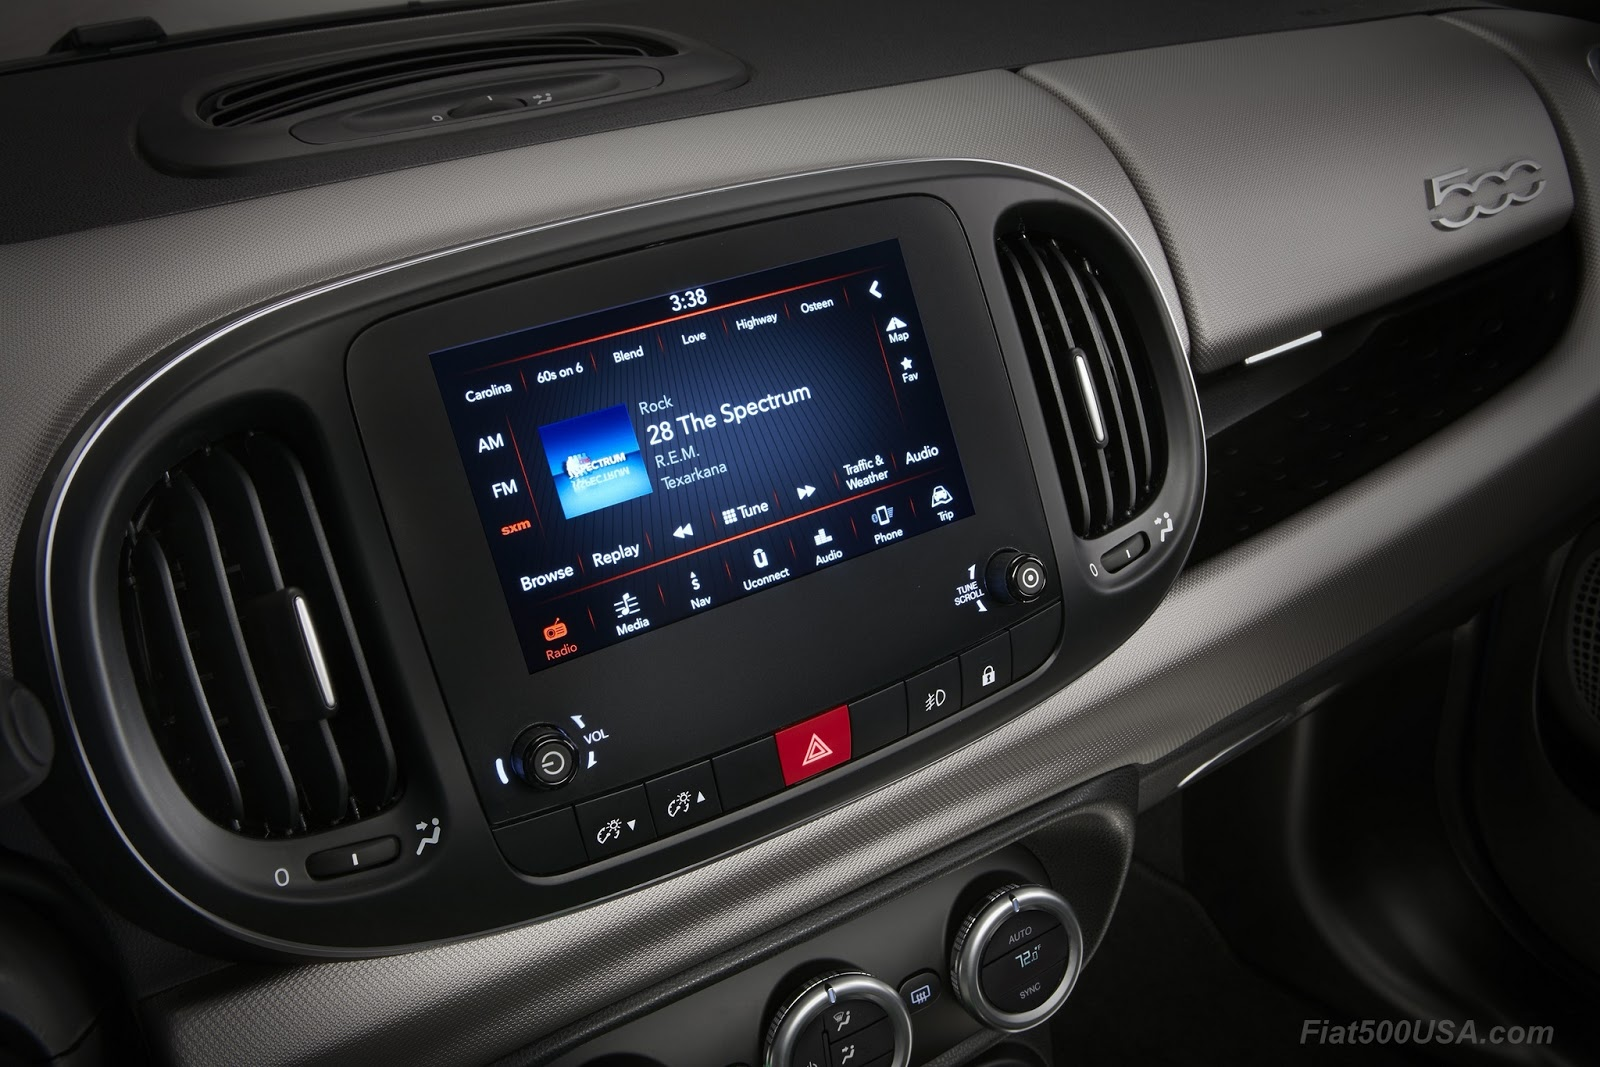 fiat 500l interior automatic. uconnect 4 system standard on all 2018 fiat 500l models and includes a 7inch display apple carplay android auto capability 500l interior automatic l